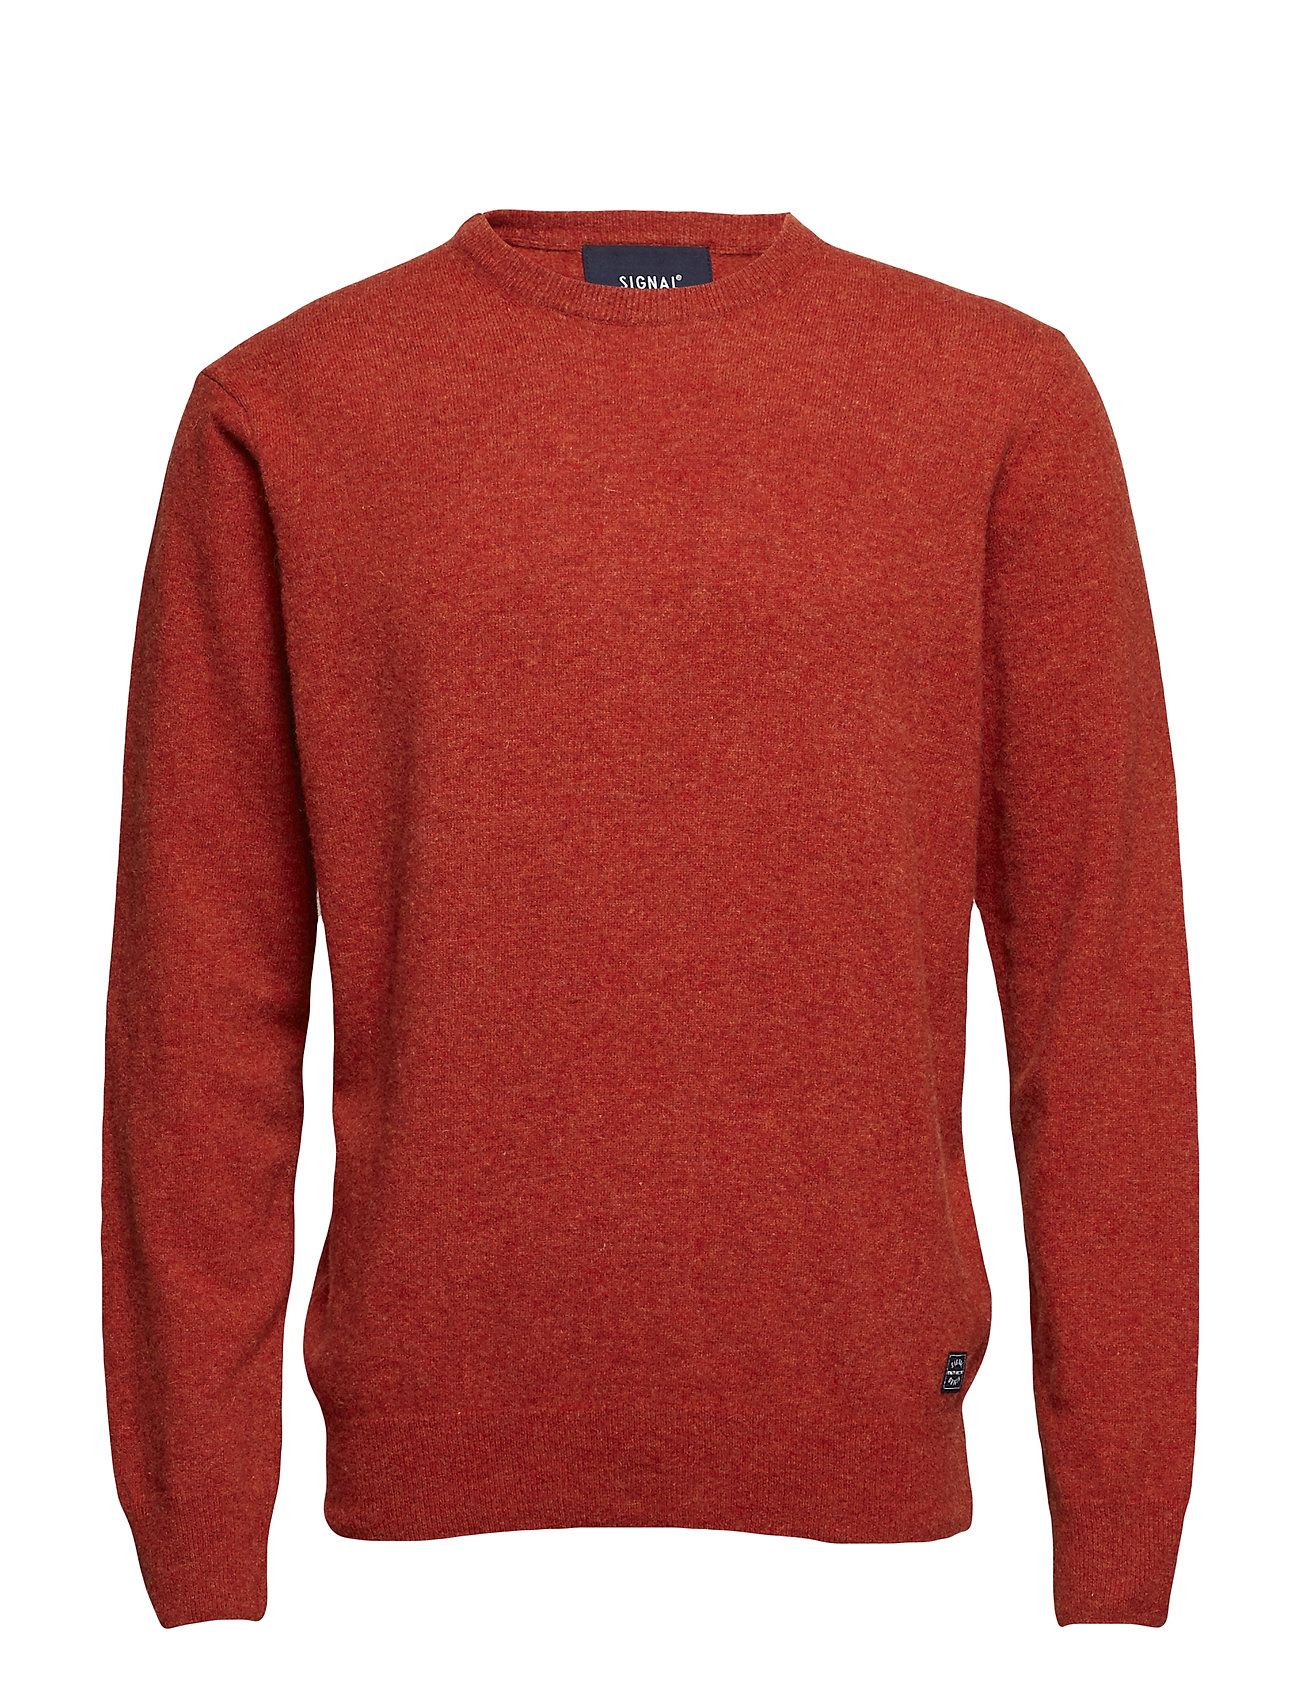 Signal Knit - ORANGE RUST MELANGE